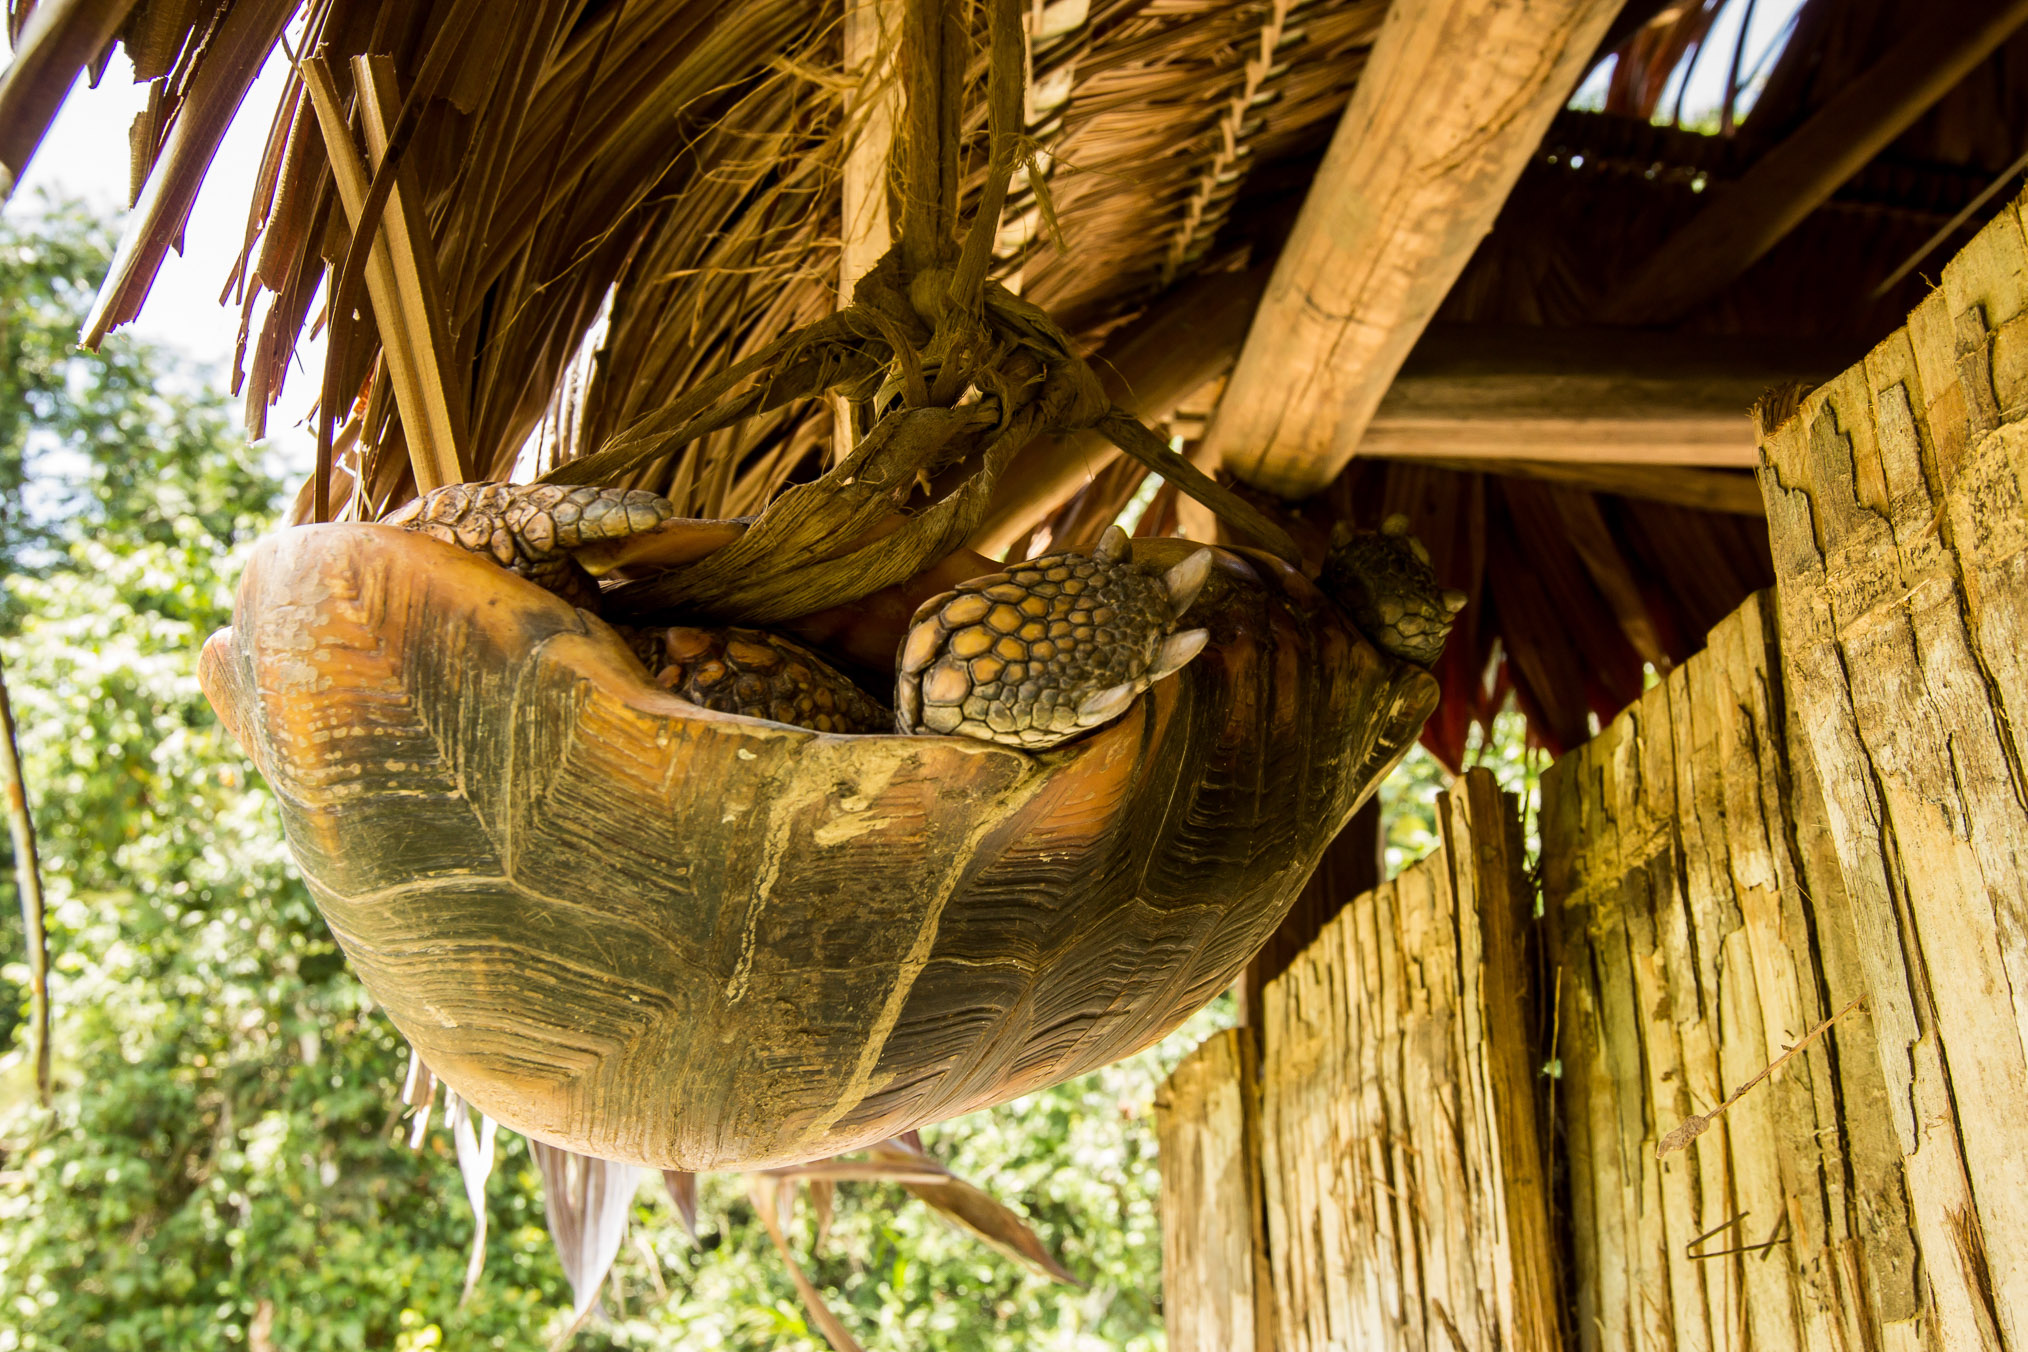 A jambuti, or rainforest tortoise, slated for the dinner plate, hangs from the eave of a family's house. Bushmeat is the main source of protein in subsistence villages and a popular restaurant menu item in Amazonian cities.